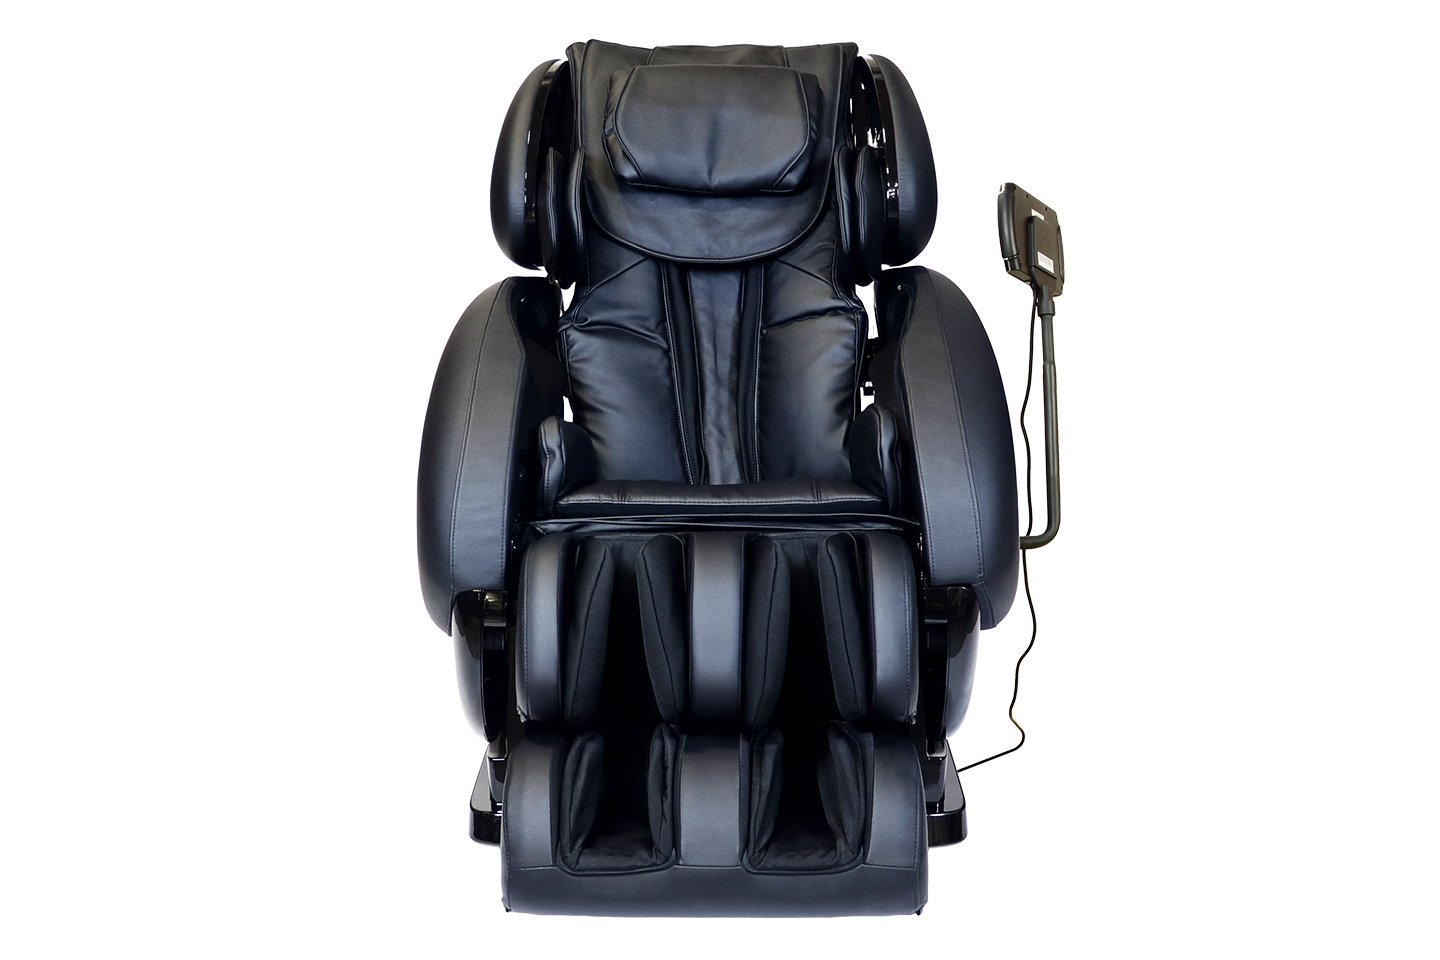 Infinity IT-8500 – Full Body Zero Gravity 3D Massage Chair – Featuring Air Compression, Decompression Stretch, Lumbar Heat, and Shiatsu Technique- Black